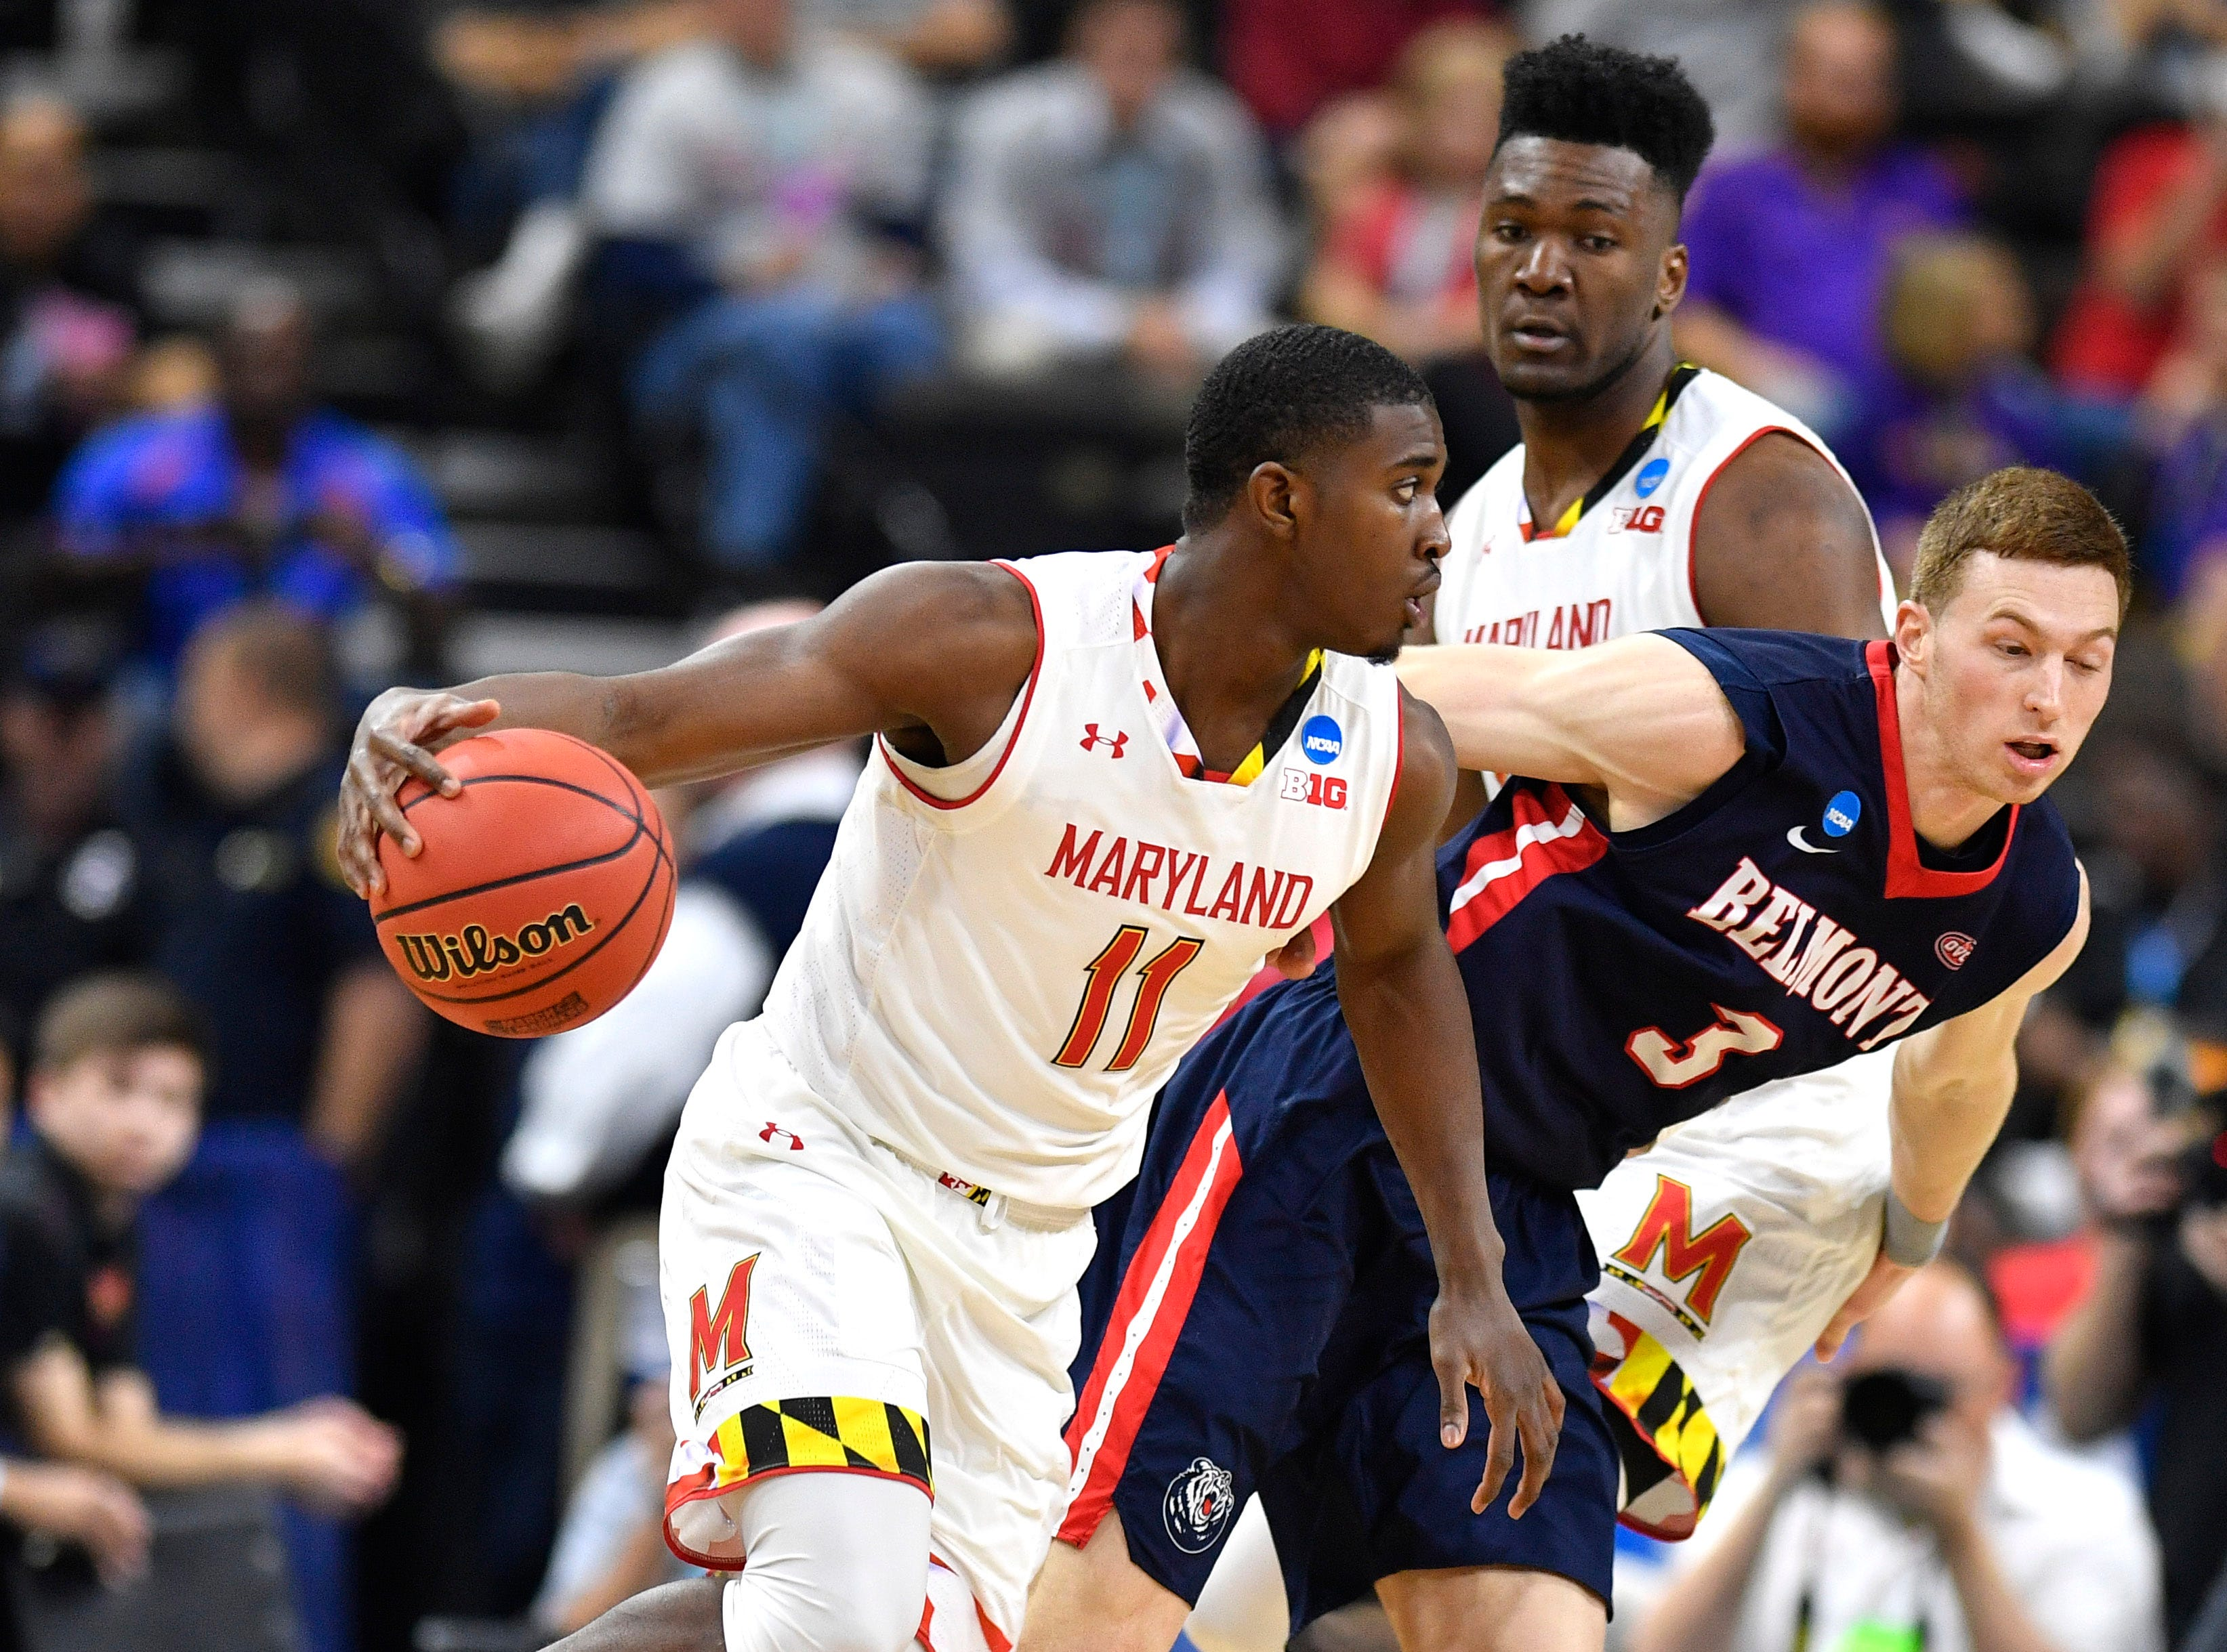 Maryland guard Darryl Morsell (11) moves the ball defended by Belmont guard/forward Dylan Windler (3) during the second half of the first-round NCAA college basketball tournament game at VyStar Veterans Memorial Arena in Jacksonville, Fla., Thursday, March 21, 2019.